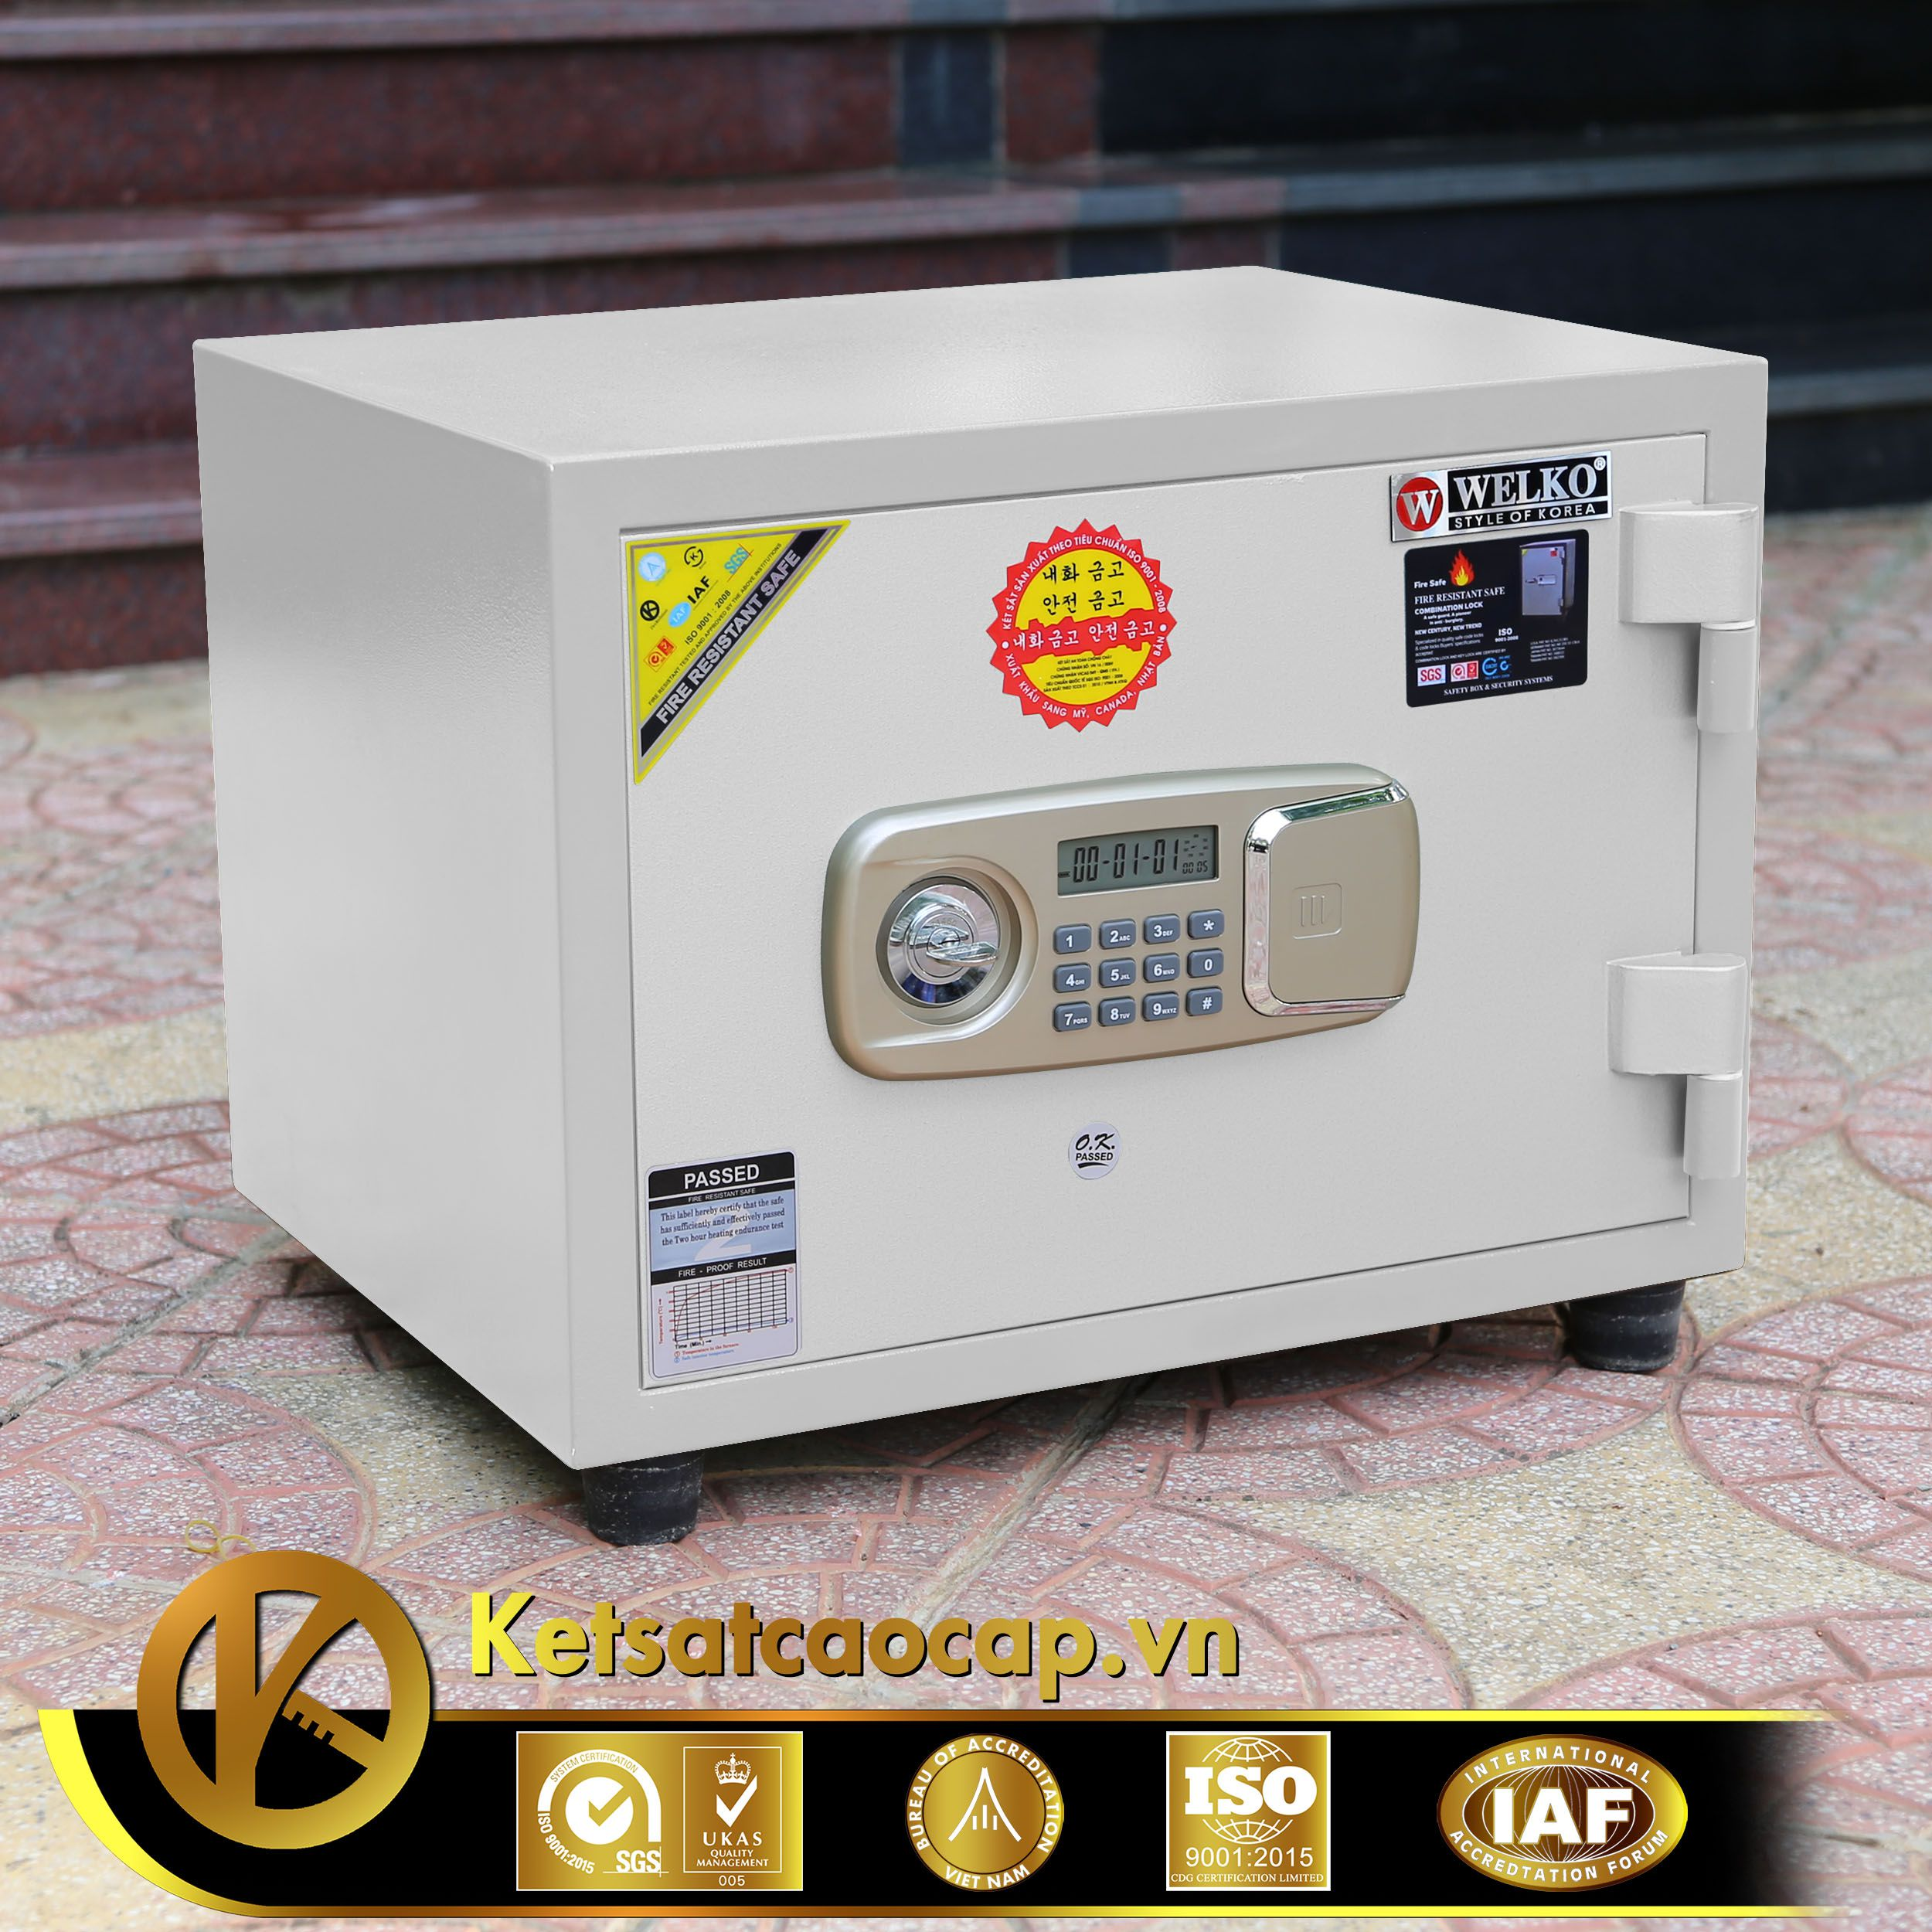 cach doi ma ket sat khoa co WELKO Fire Resistant Safes